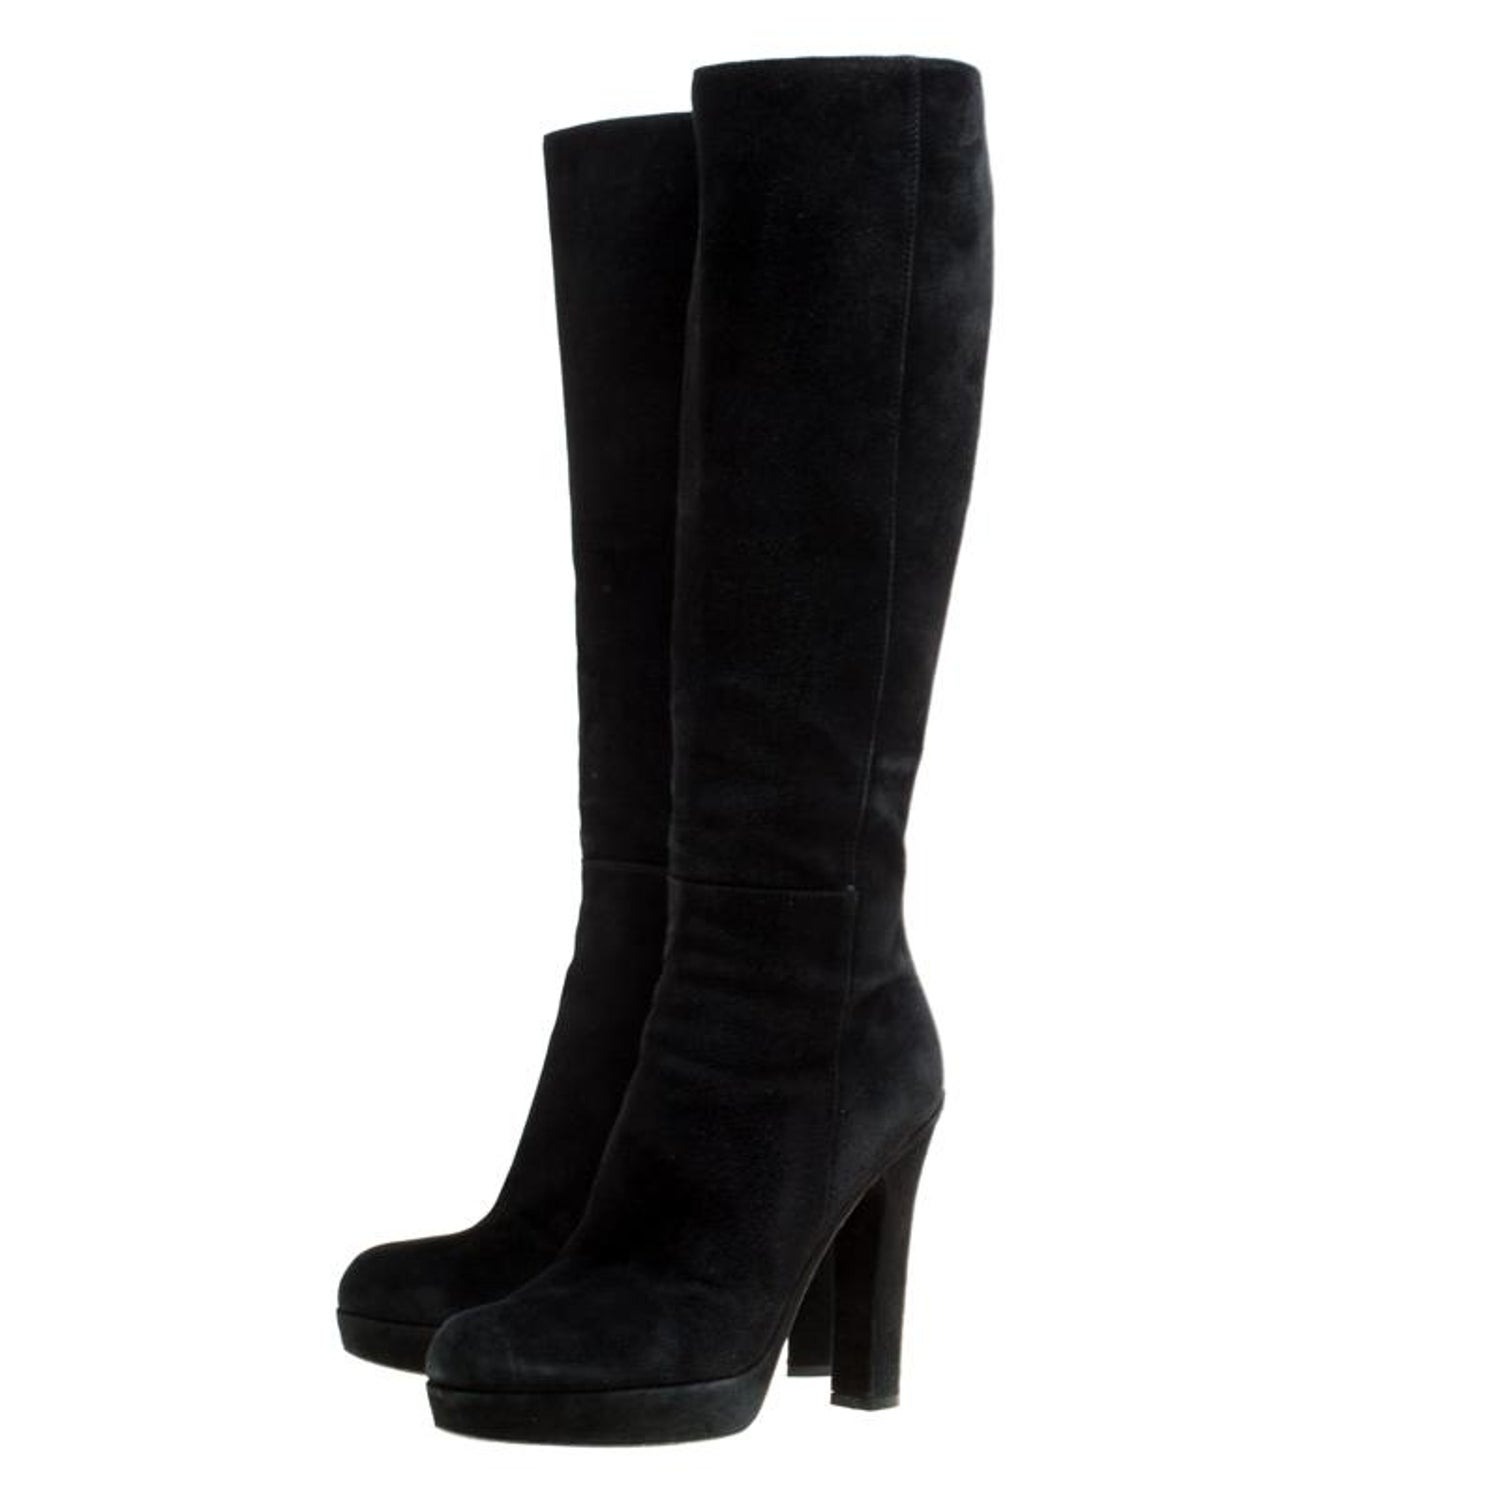 21464315f74 Saint Laurent Black Suede Block Heel Knee Length Platform Boots Size 40 For  Sale at 1stdibs